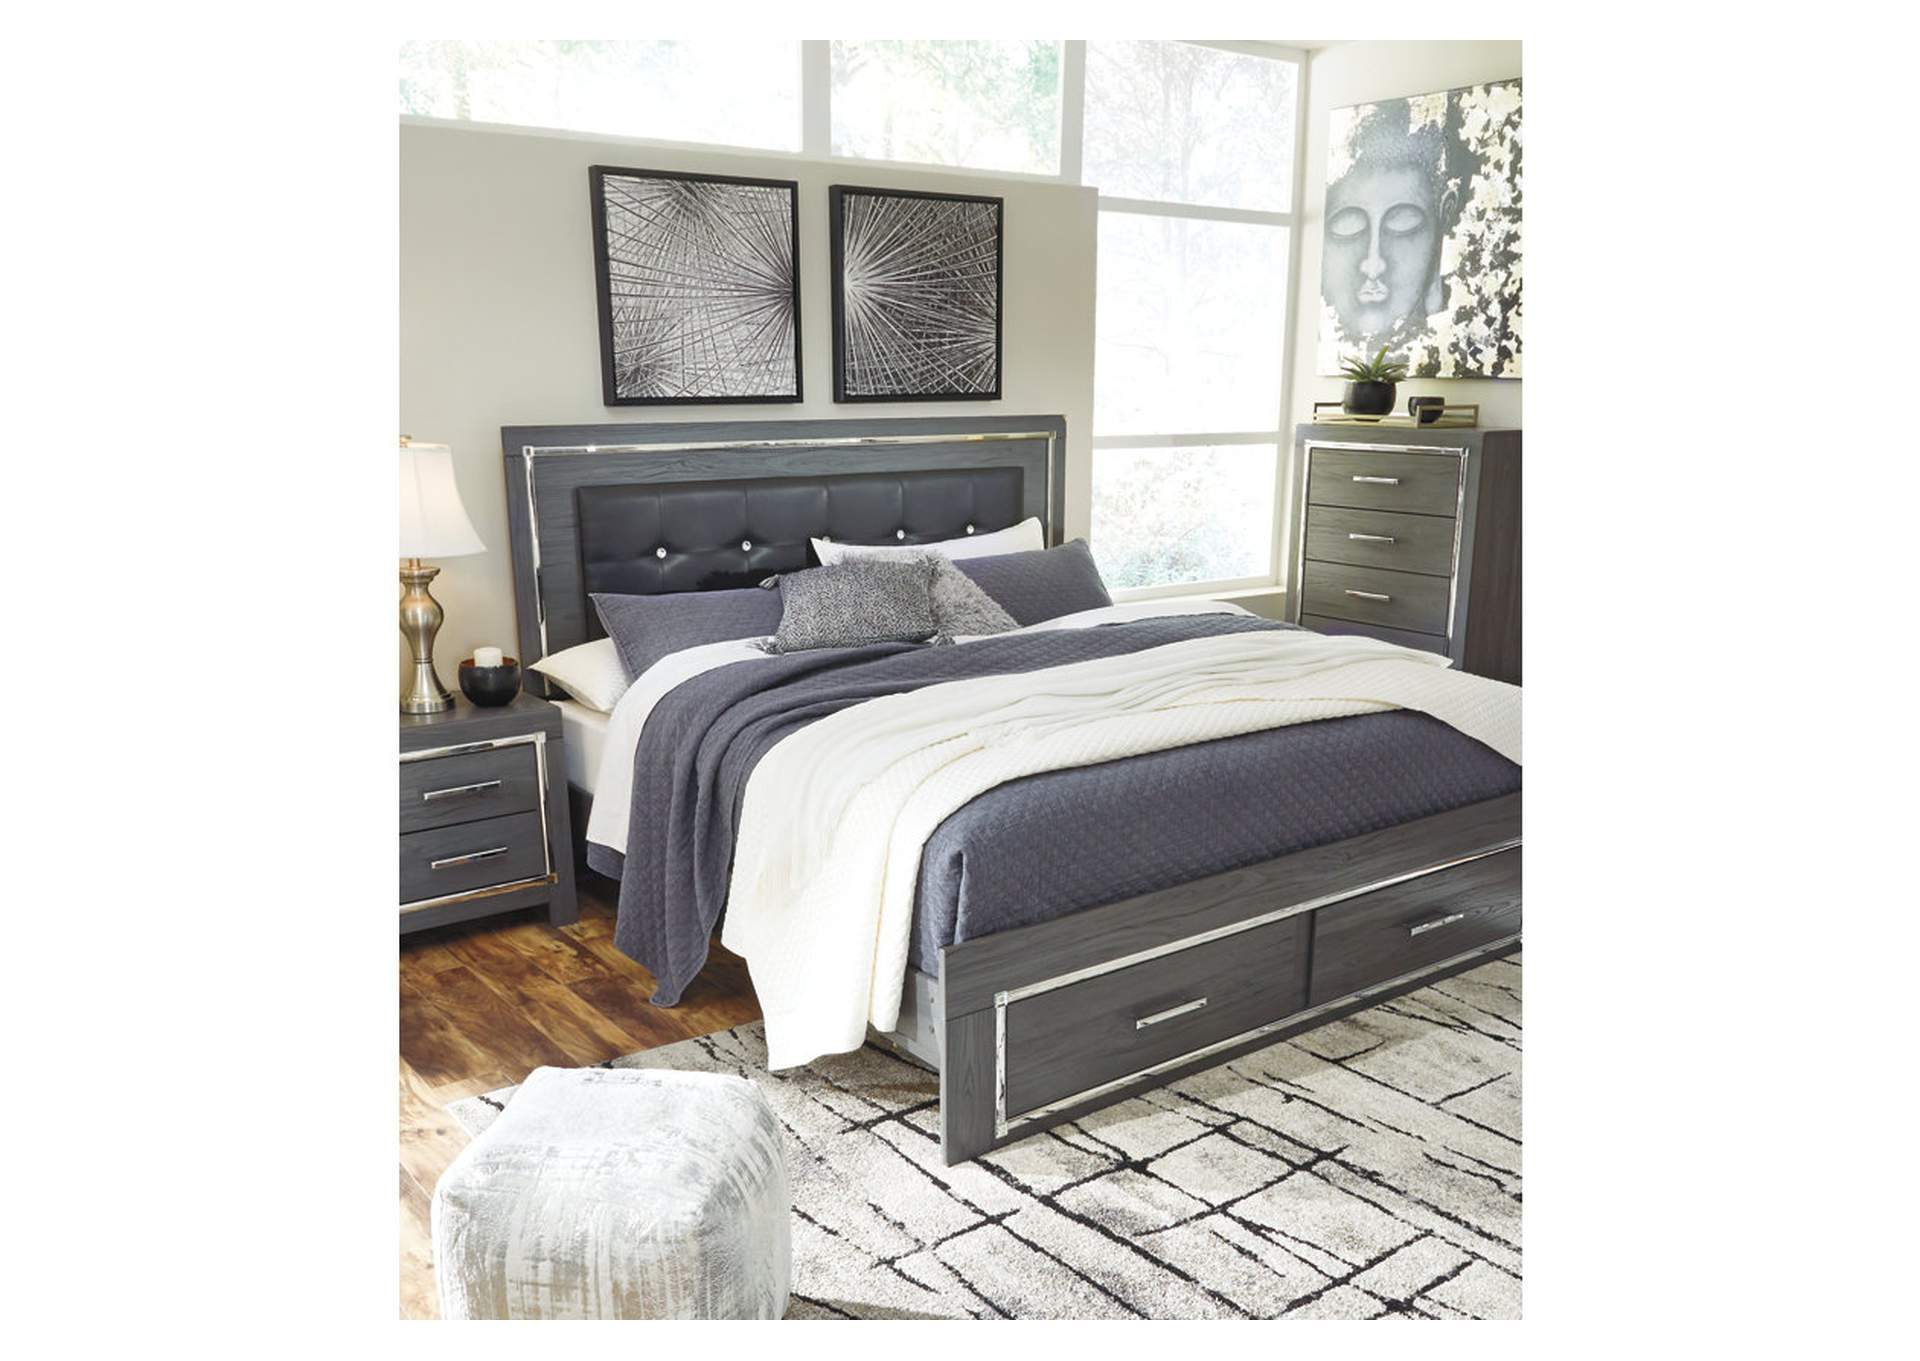 Lodanna King Panel Bed with 2 Storage Drawers,Signature Design By Ashley